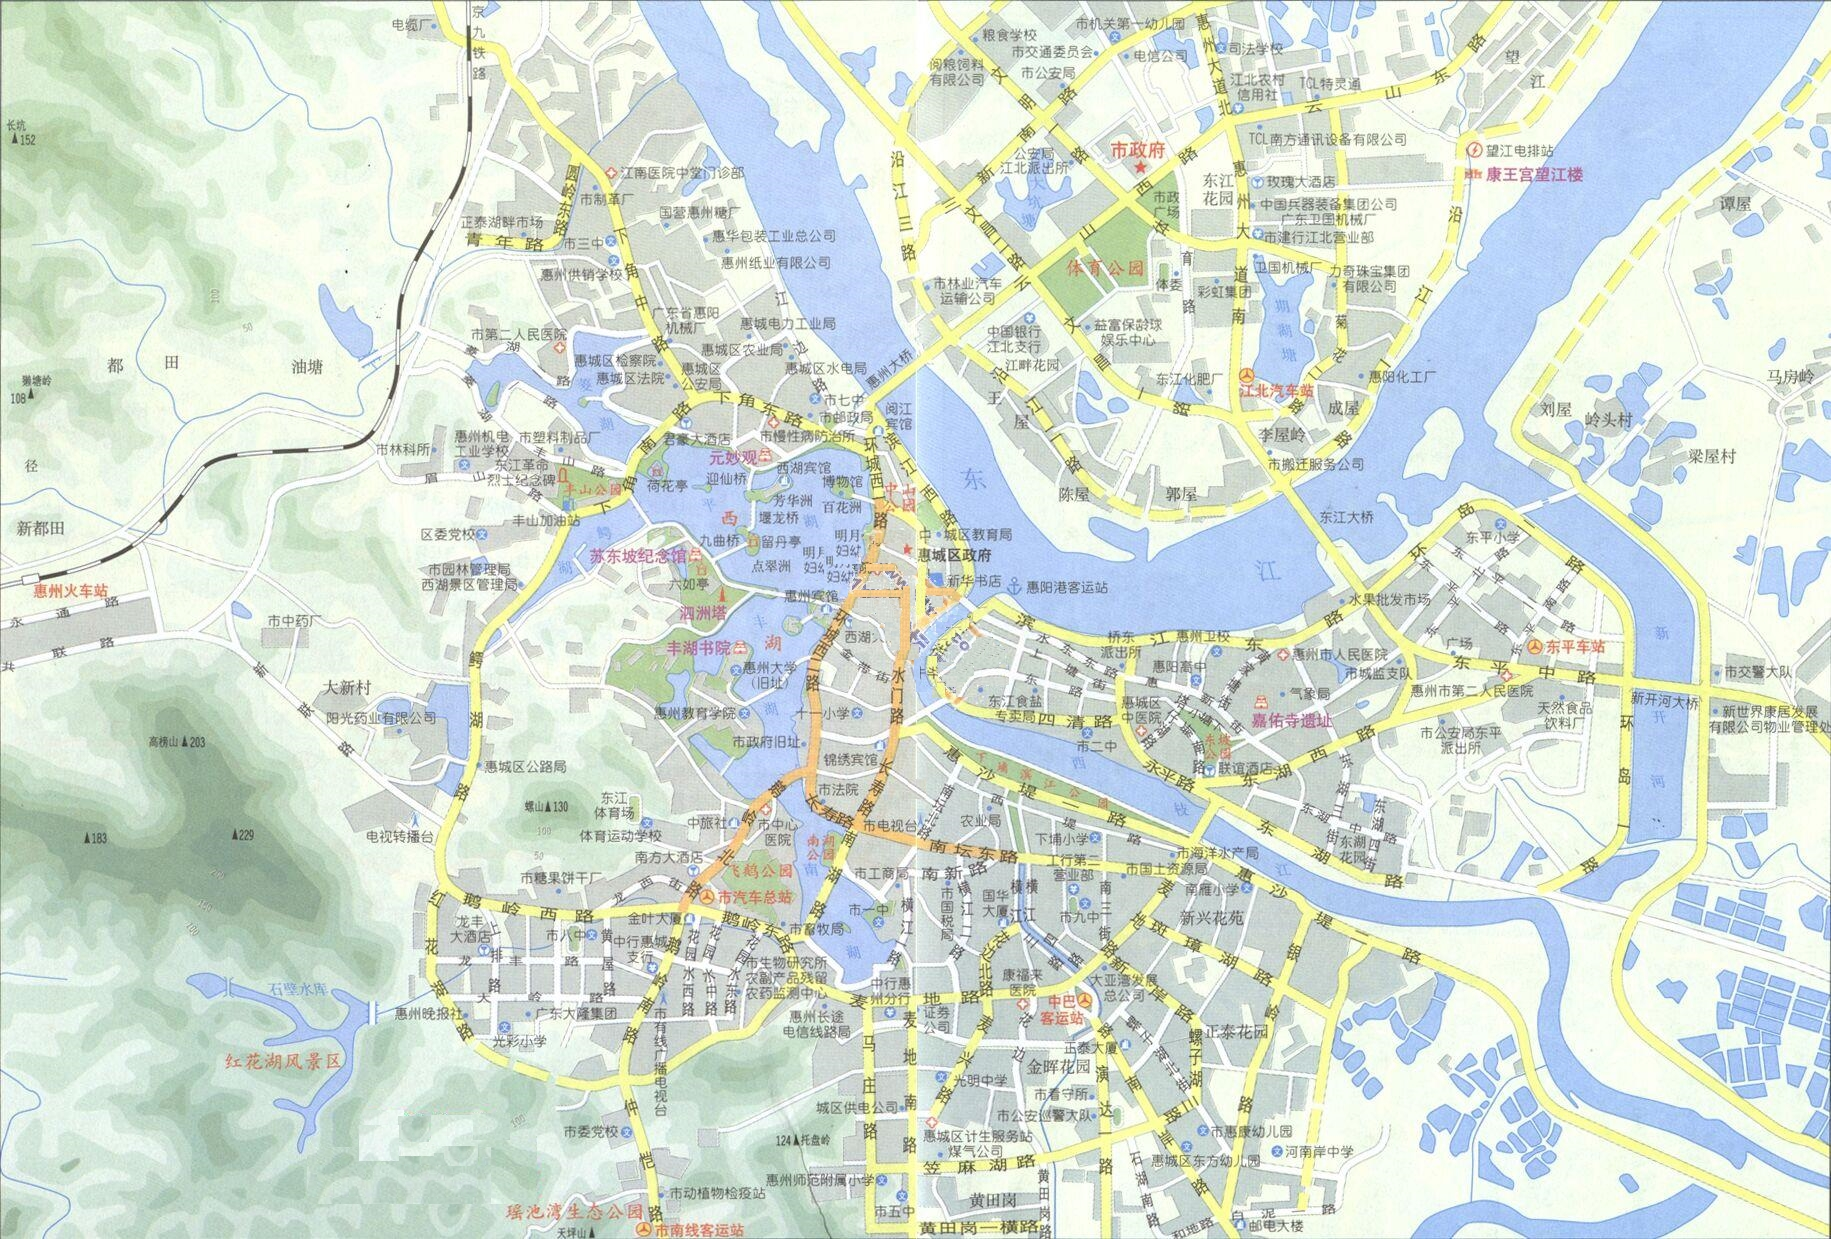 Huizhou China  city pictures gallery : huizhou map,map,China map,shenzhen map,world map,cap lamps,LED safety ...